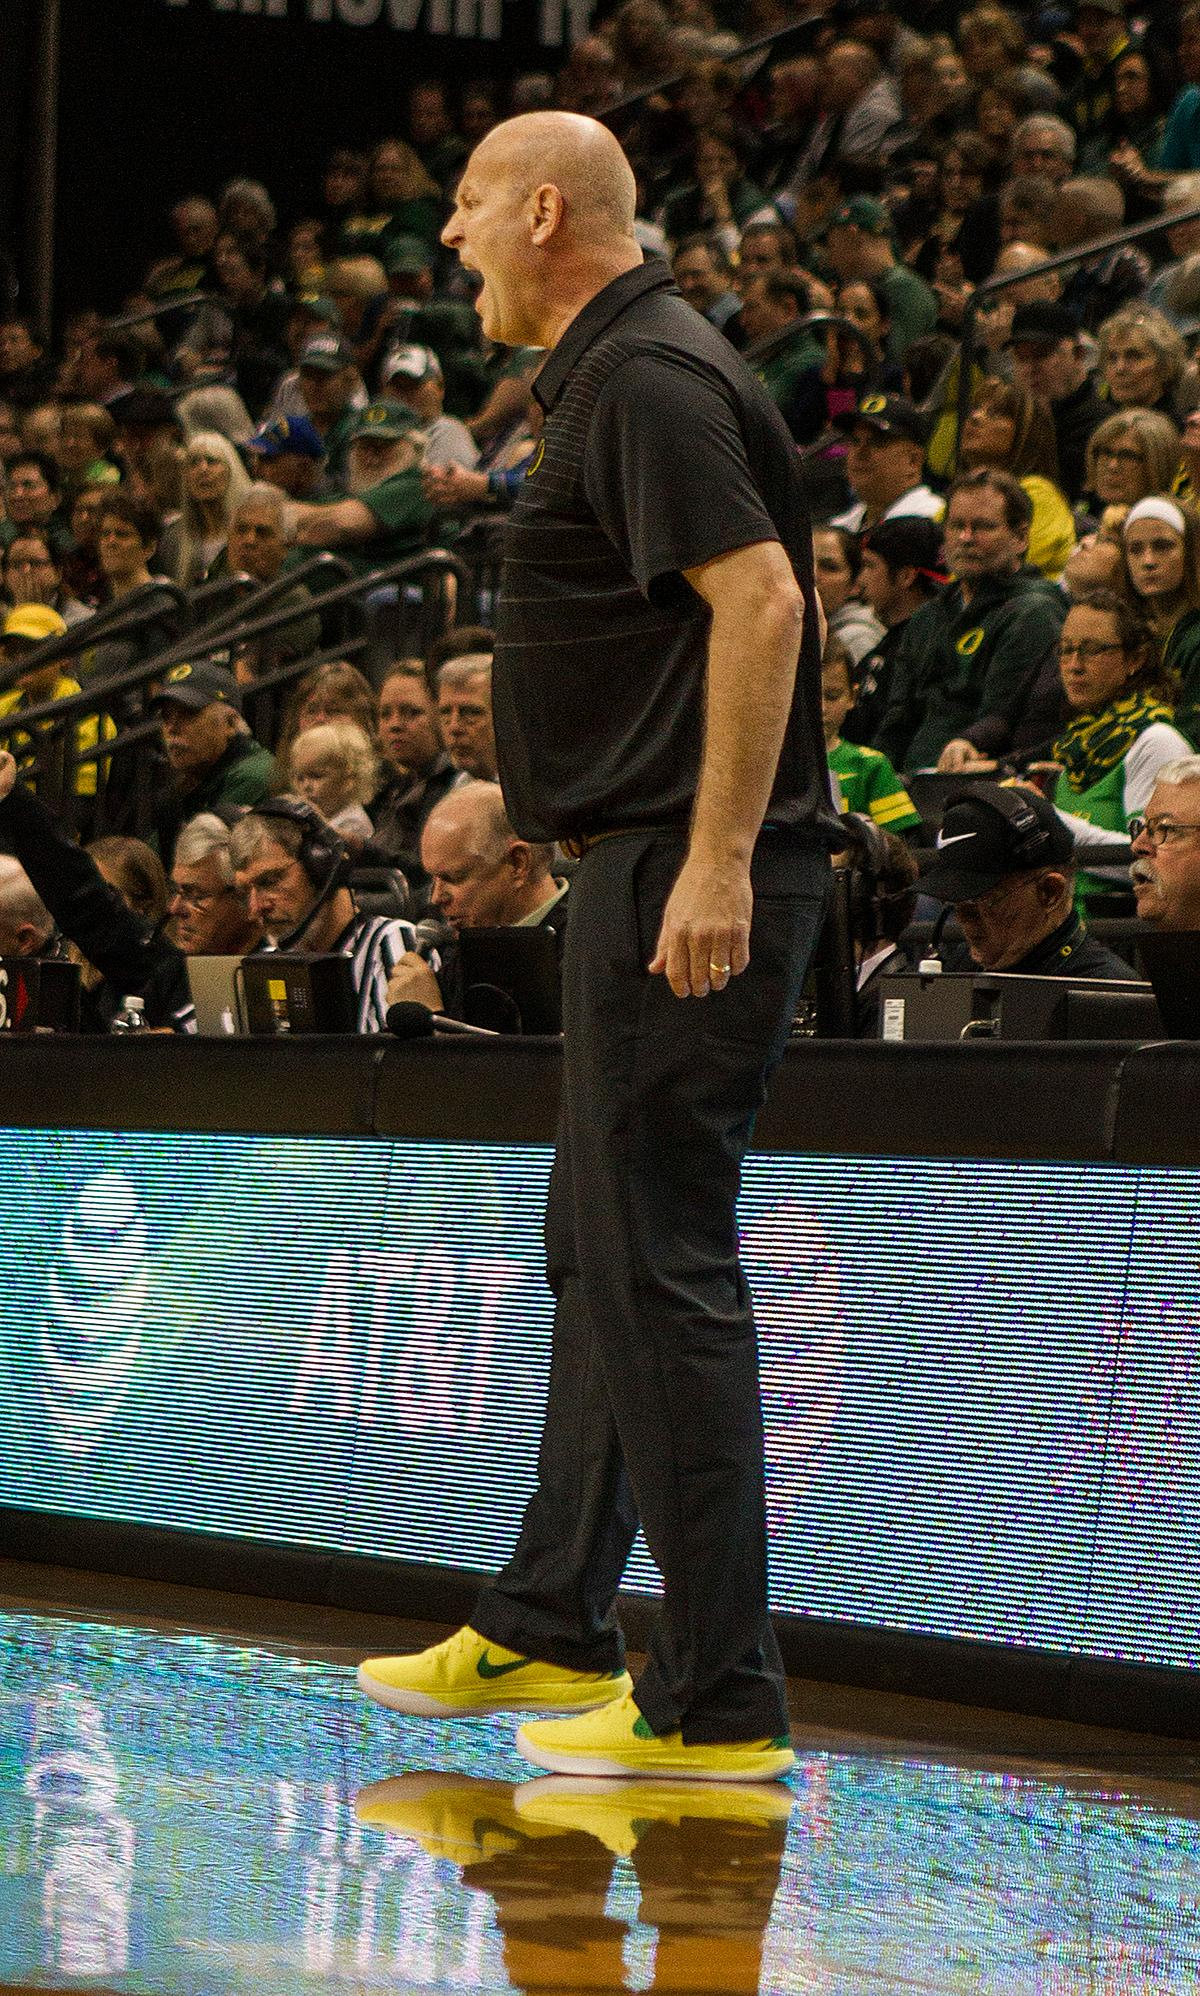 Oregon Ducks head coach Kelly Graves yells during the game after an unsettling call from the referees. The Oregon Ducks defeated the Washington Huskies 94-83 on Sunday at Matthew Knight Arena. The victory was Head Coach Kelly Graves' 500th career win. Sabrina Ionescu also set the new NCAA all time record of 8 triple doubles in just 48 games. The previous record was 7 triple doubles in 124 games, held by Susie McConnell at Penn State. The Ducks will next face off against USC on Friday January 5th in Los Angeles. Photo by Rhianna Gelhart, Oregon News Lab